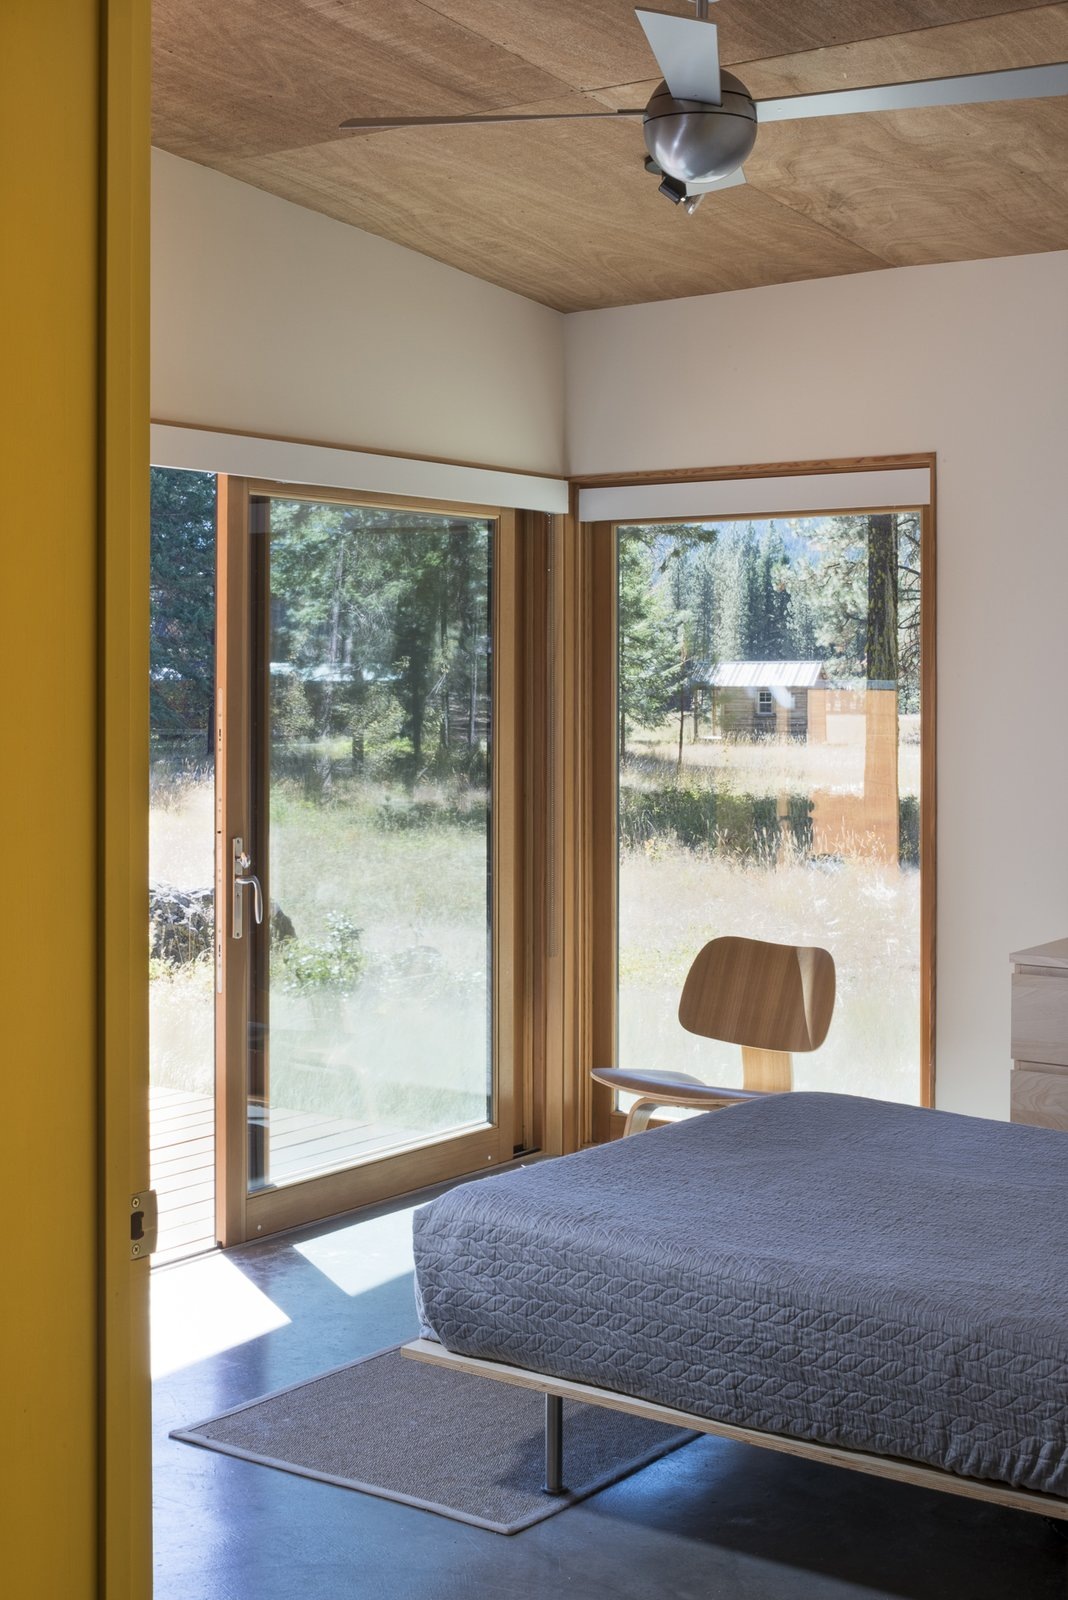 The bedroom opens out onto the deck and meadow beyond.  Lot 6 by Prentiss + Balance + Wickline Architects